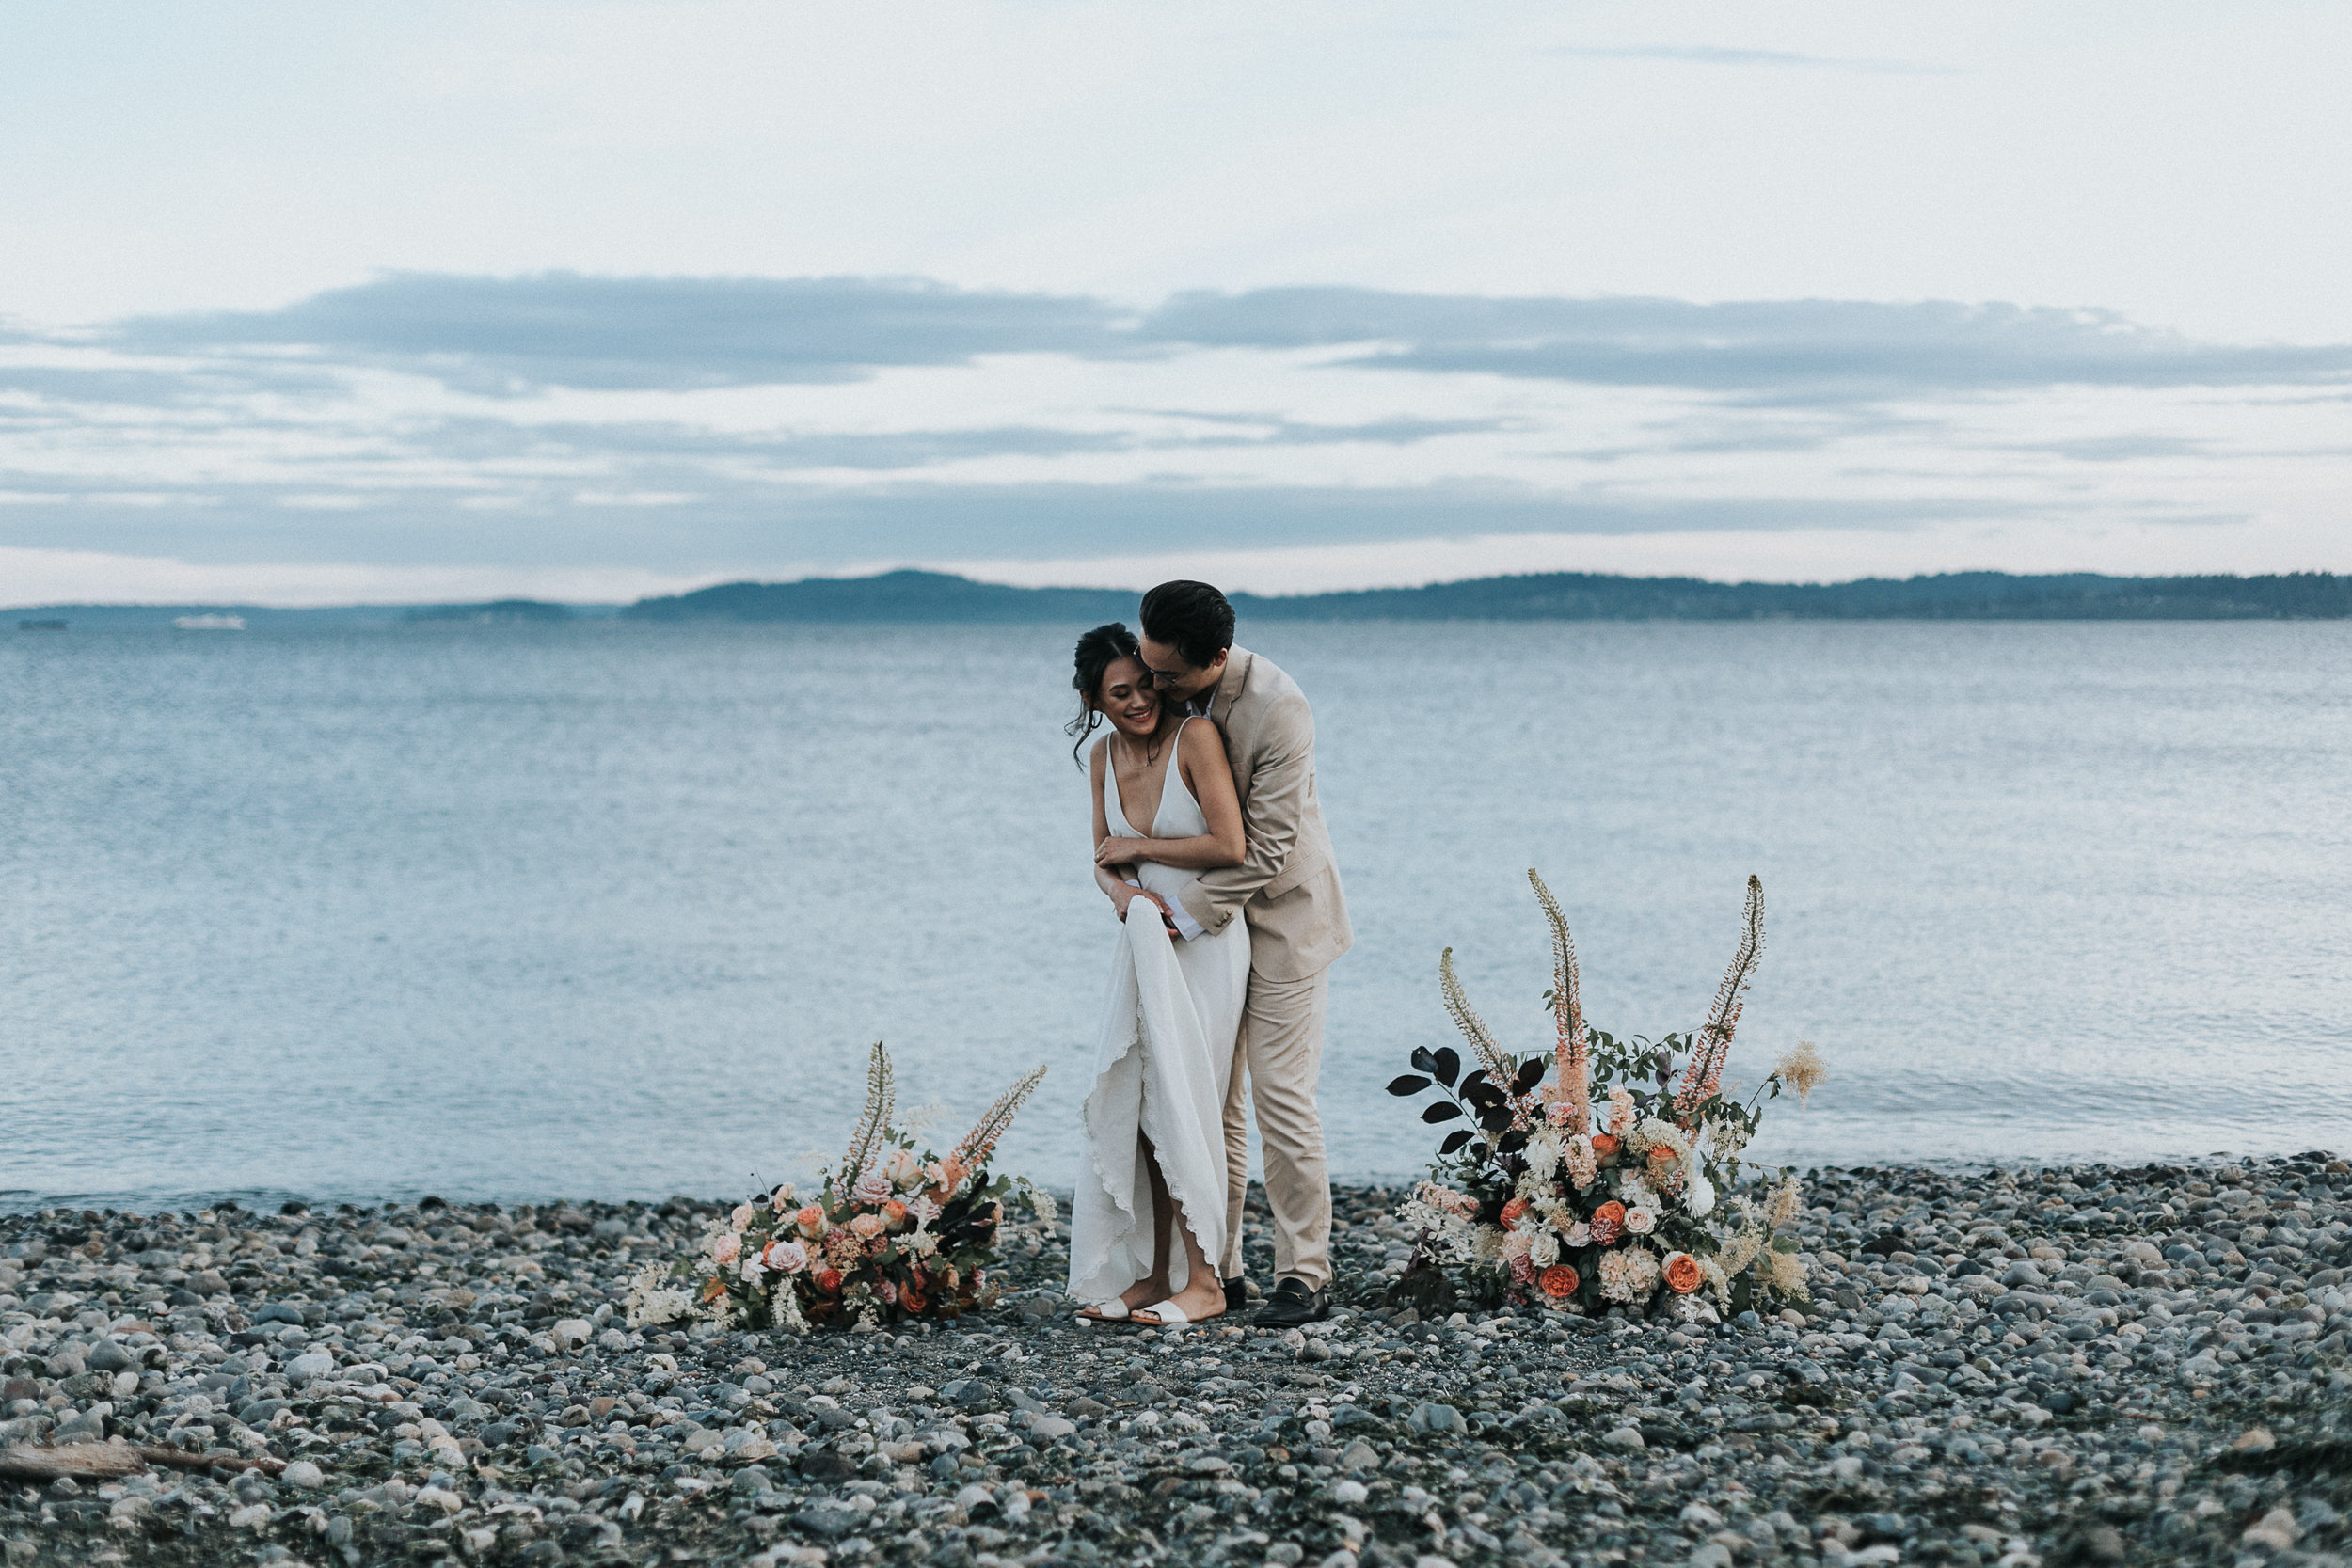 discoveryparkelopement - runaway with me elopements - seattle elopement-184.jpg